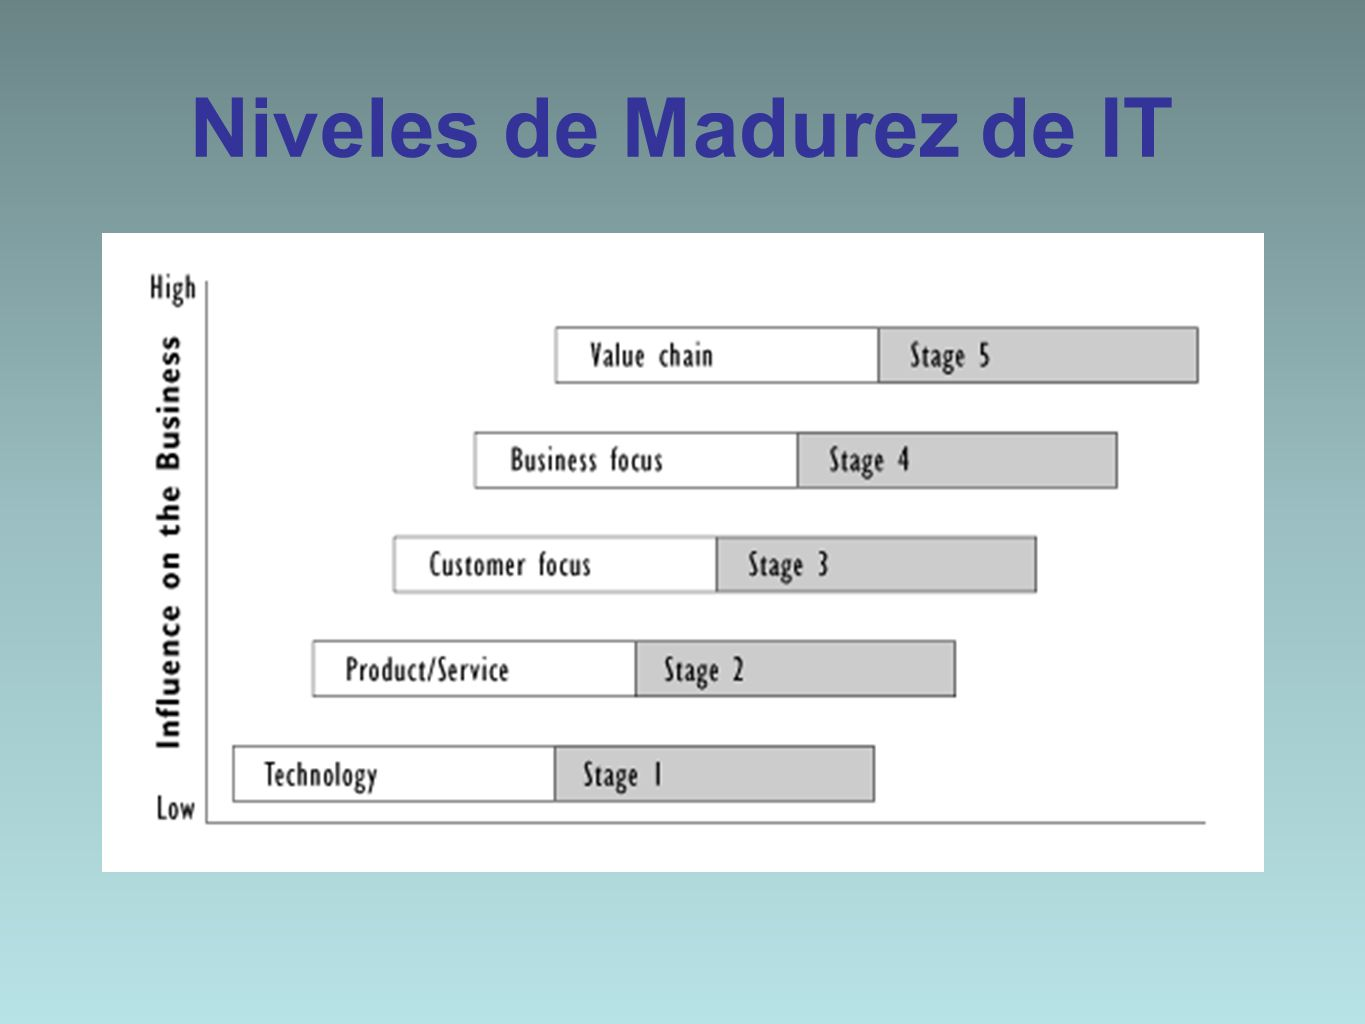 Niveles de Madurez de IT